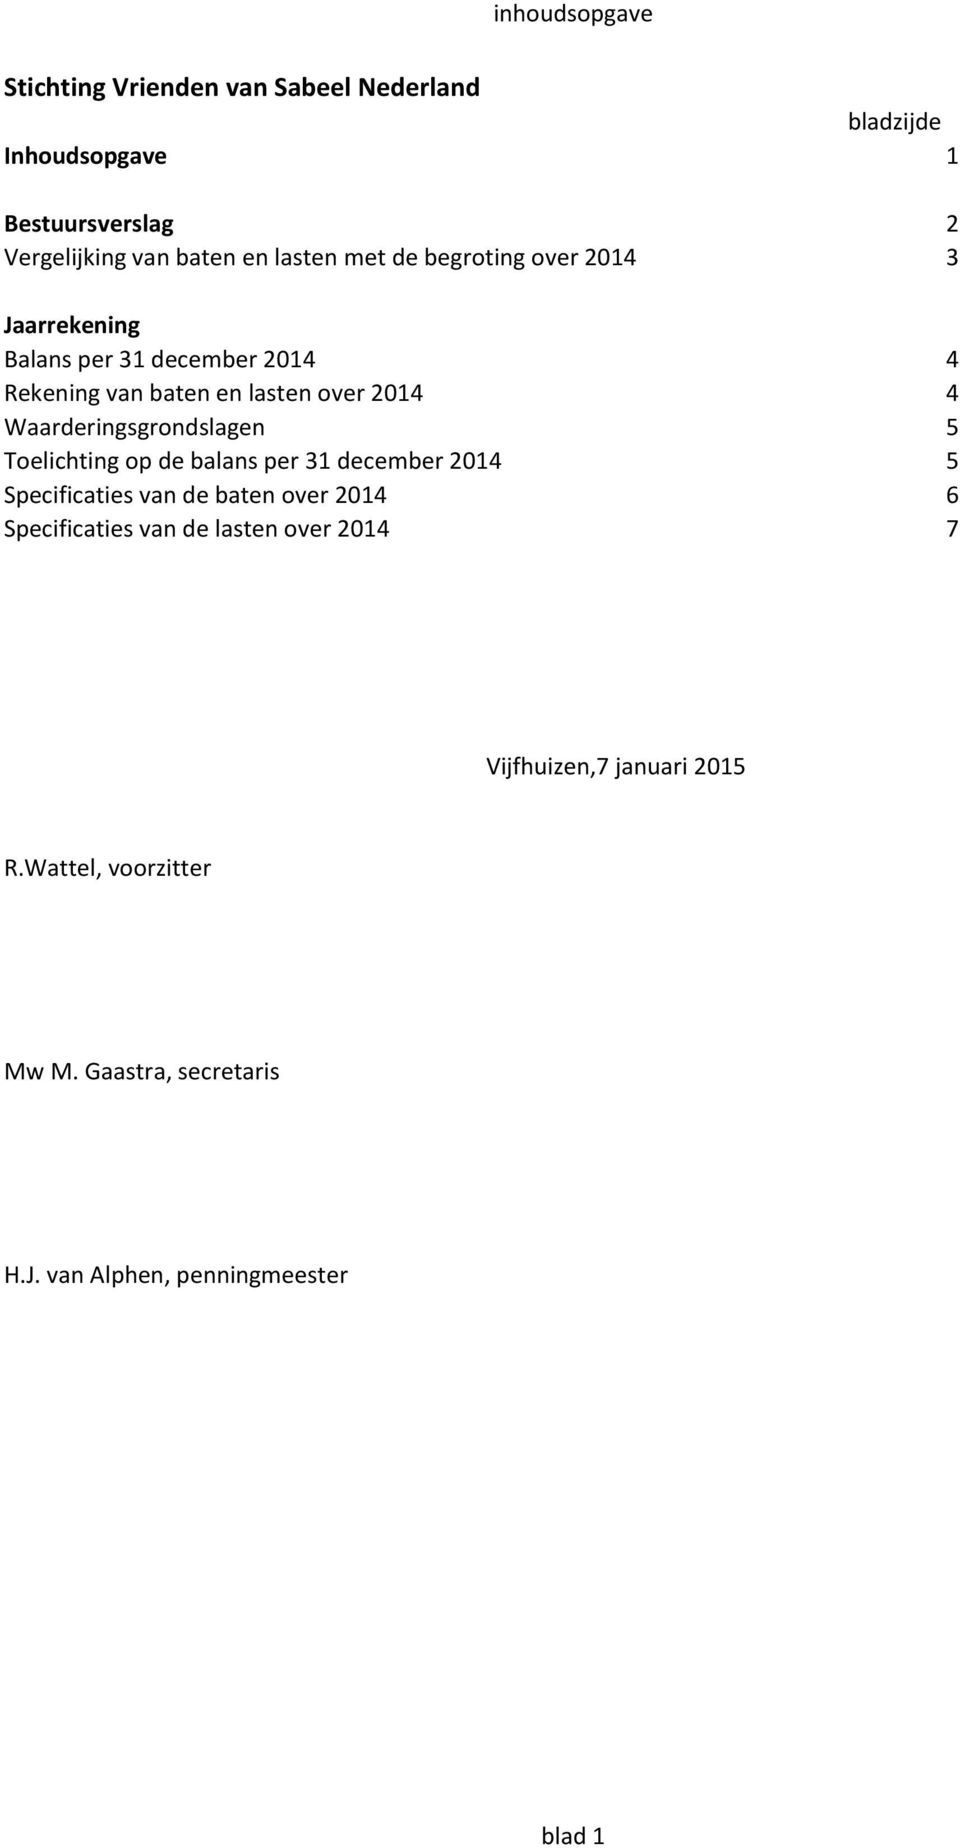 Toelichting op de balans per 31 december 2014 5 Specificaties van de baten over 2014 6 Specificaties van de lasten